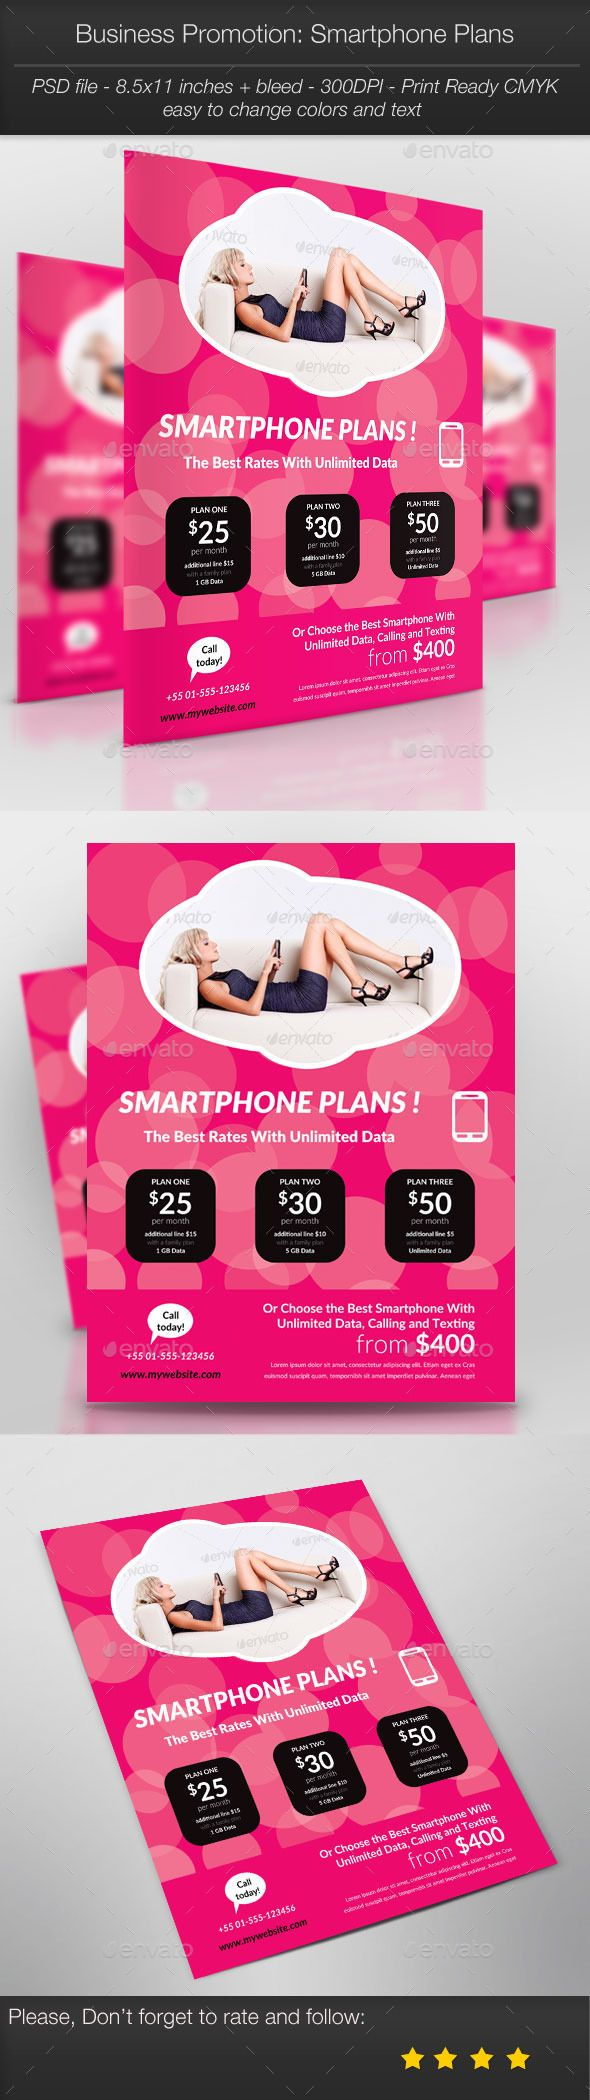 Business Promotion: Smartphone Plans